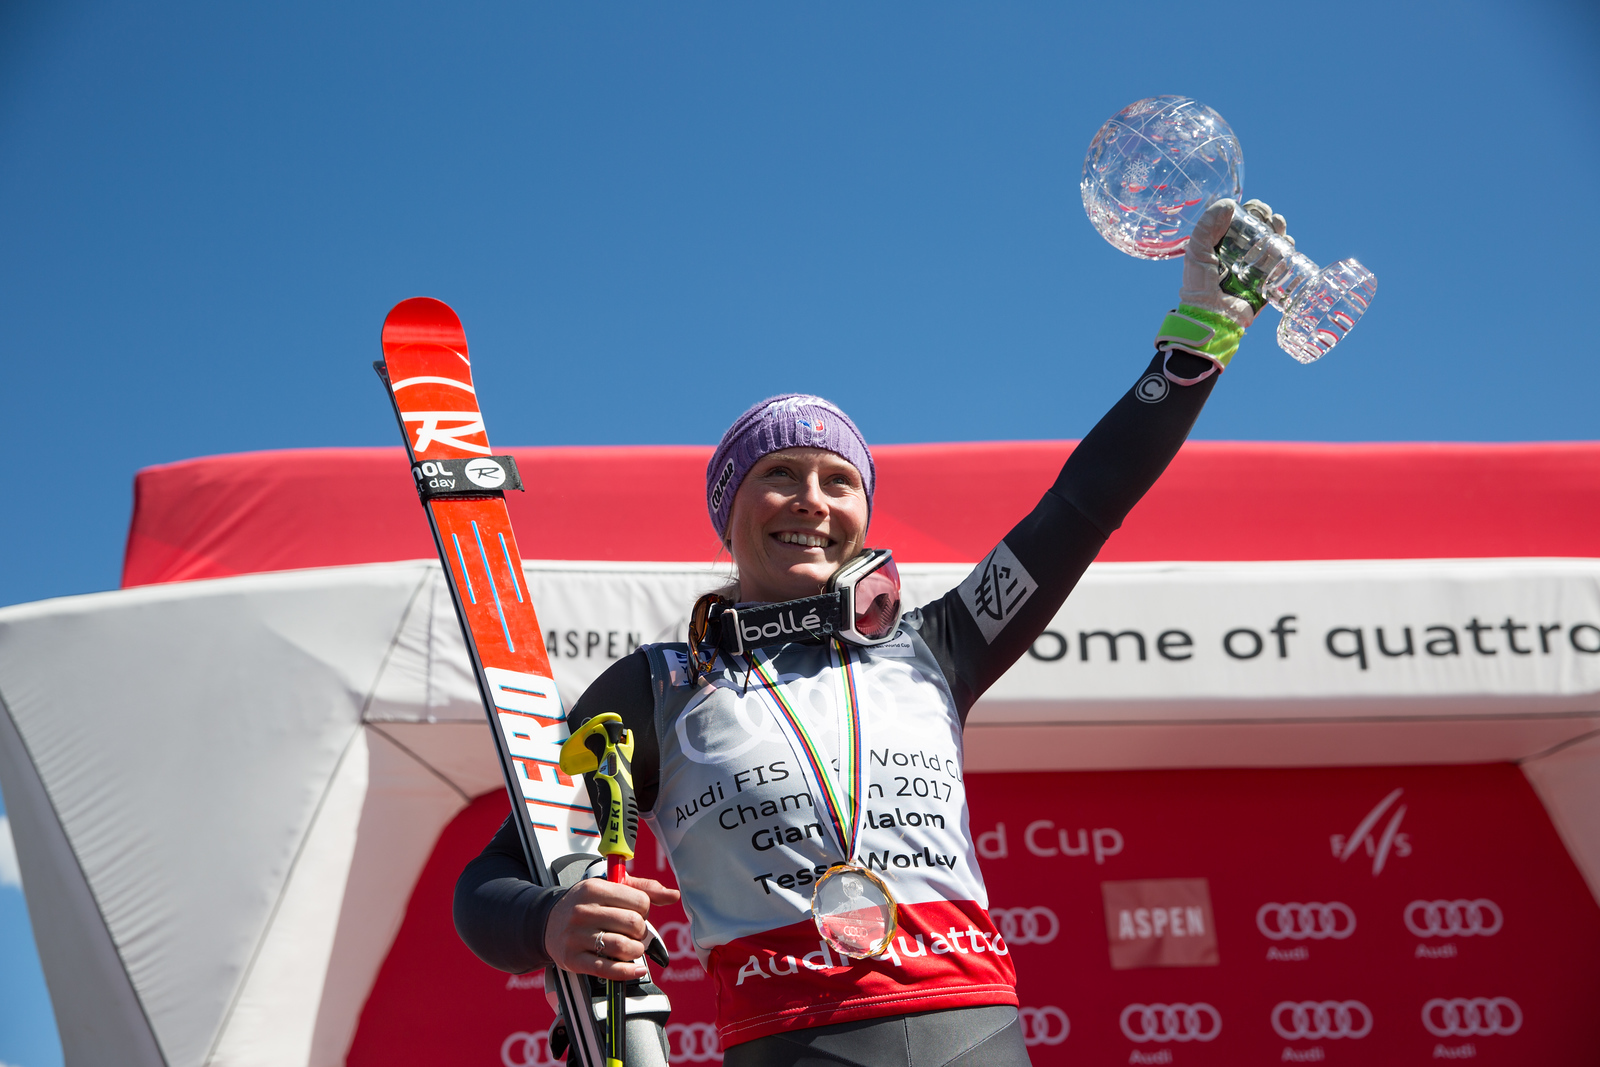 Tessa Worley GS Overall Globe  2017 Audi FIS Ski World Cup finals in Aspen, CO. Photo: U.S. Ski Team